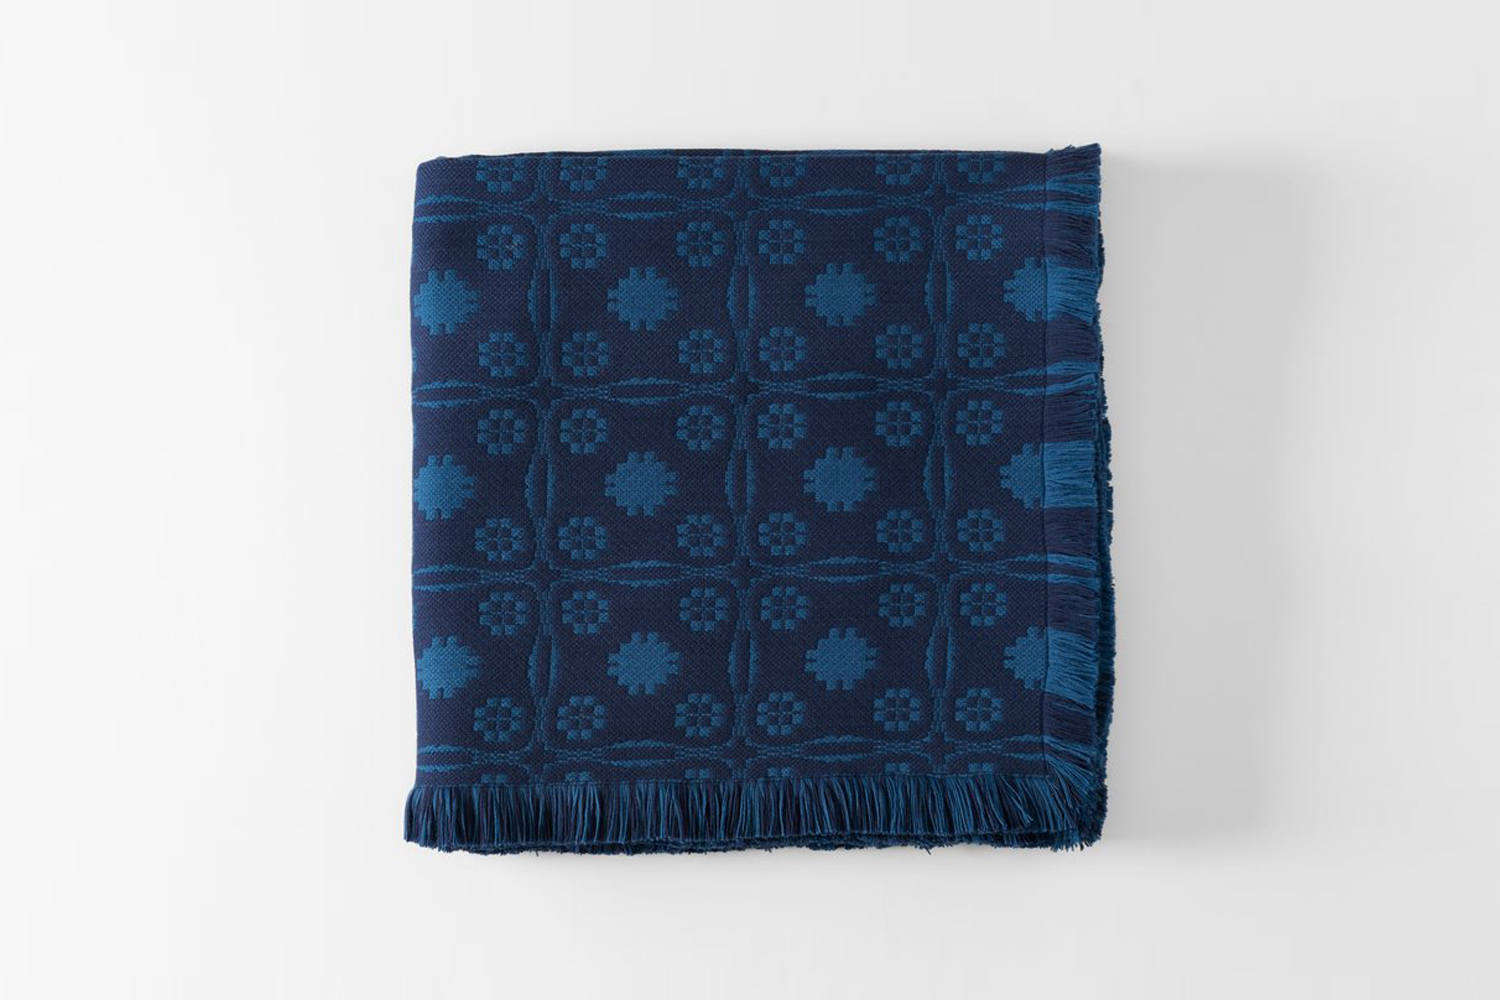 Stealth luxury: The MARCH Indigo Sturbridge Blanket from RP Miller is a weighty wool blanket woven in Guatemala from soft Merino wool; $loading=